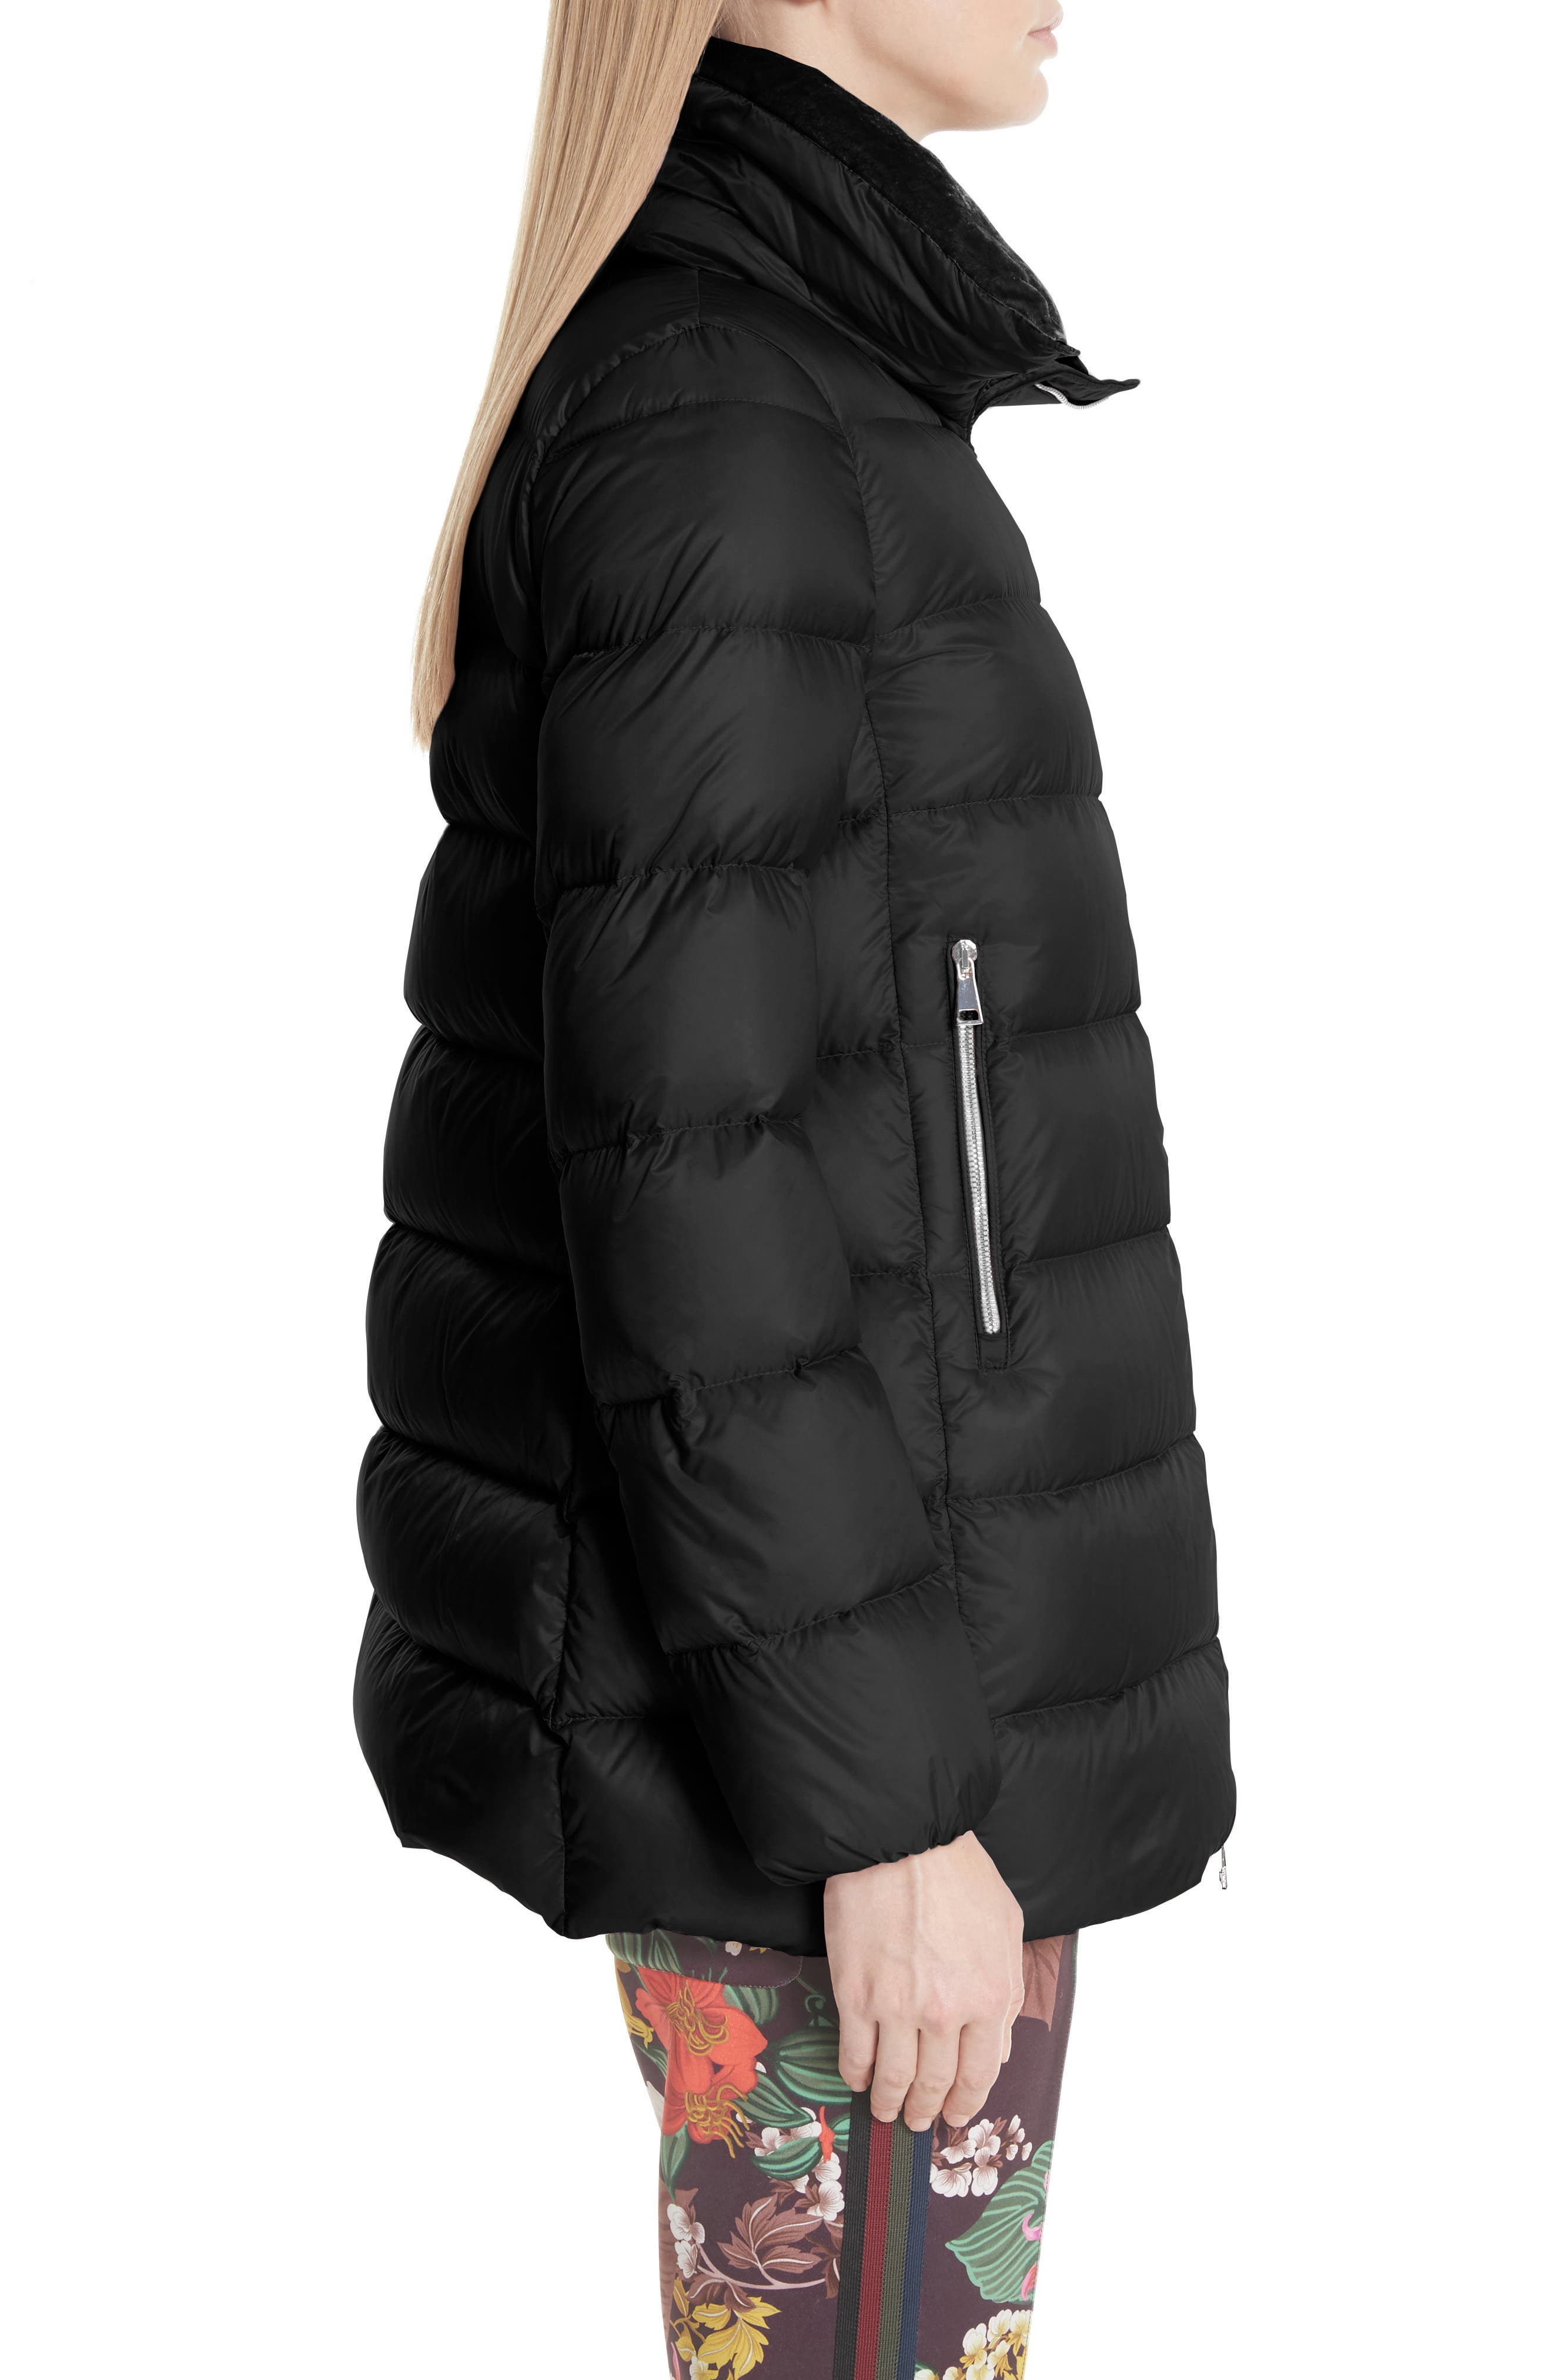 MONCLER, Torcol Quilted Down Jacket, Alternate thumbnail 3, color, BLACK